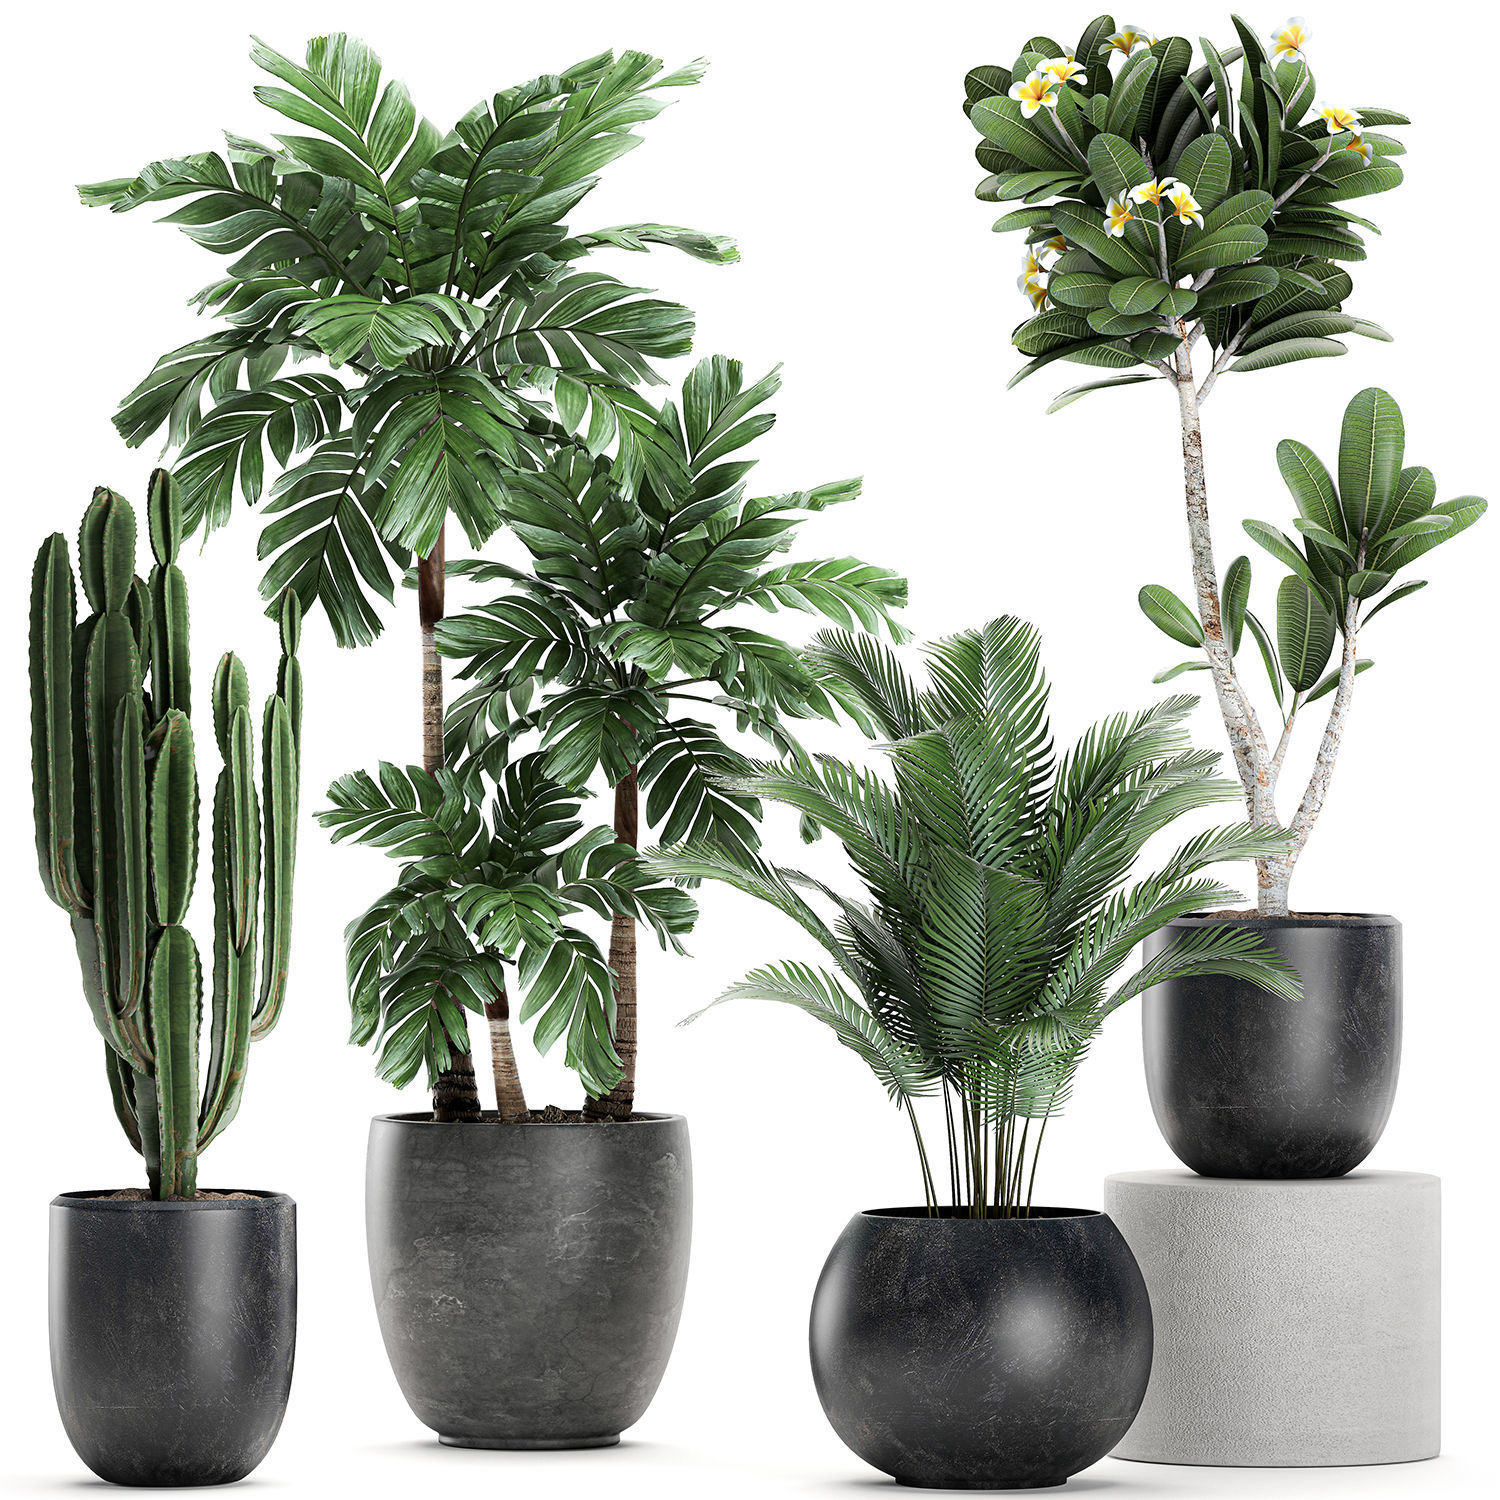 Plants in a black pot for the interior 677